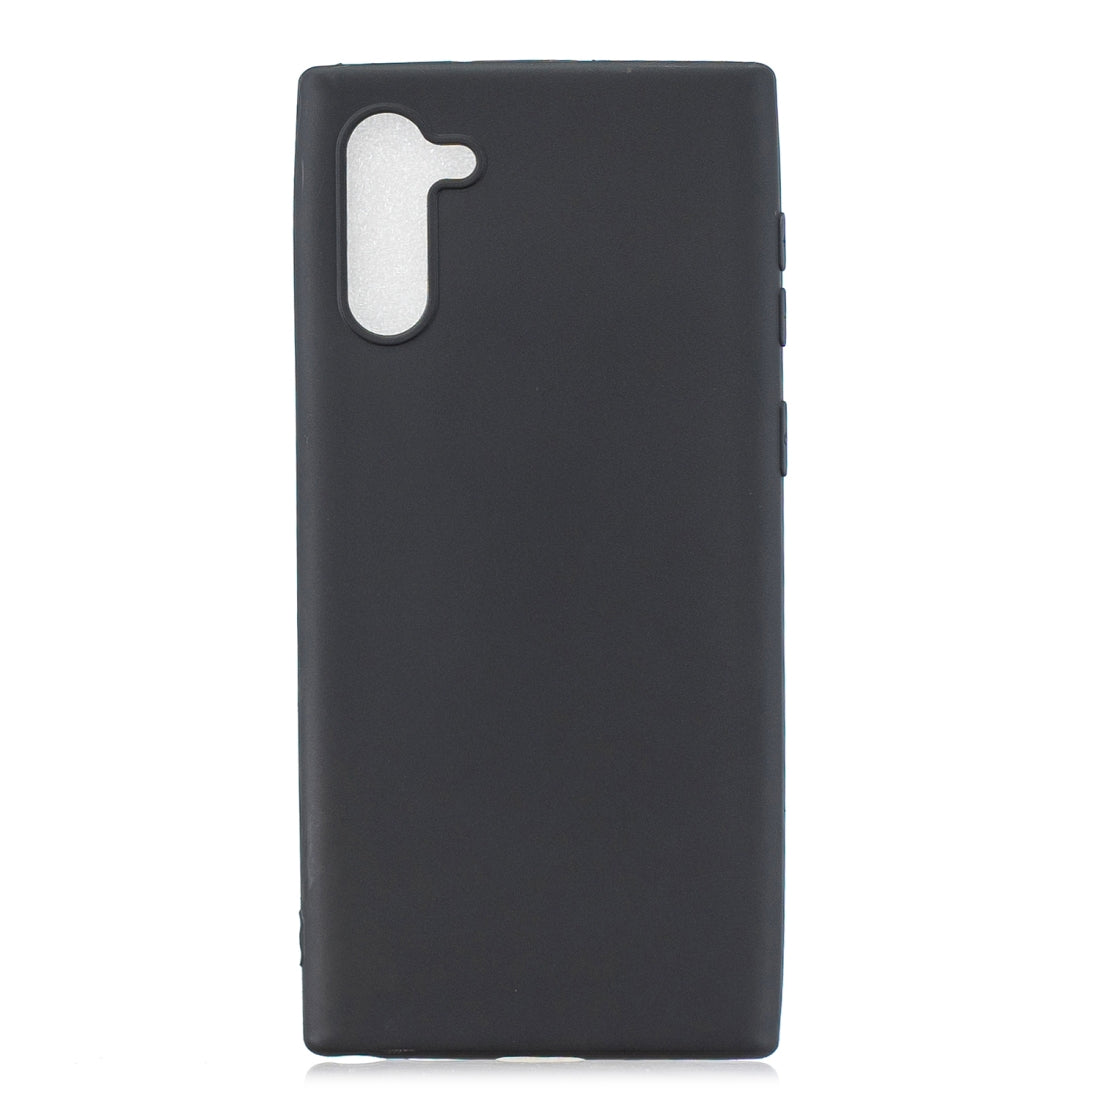 Frosted Solid Color TPU Protective Case for Galaxy Note10(Black)